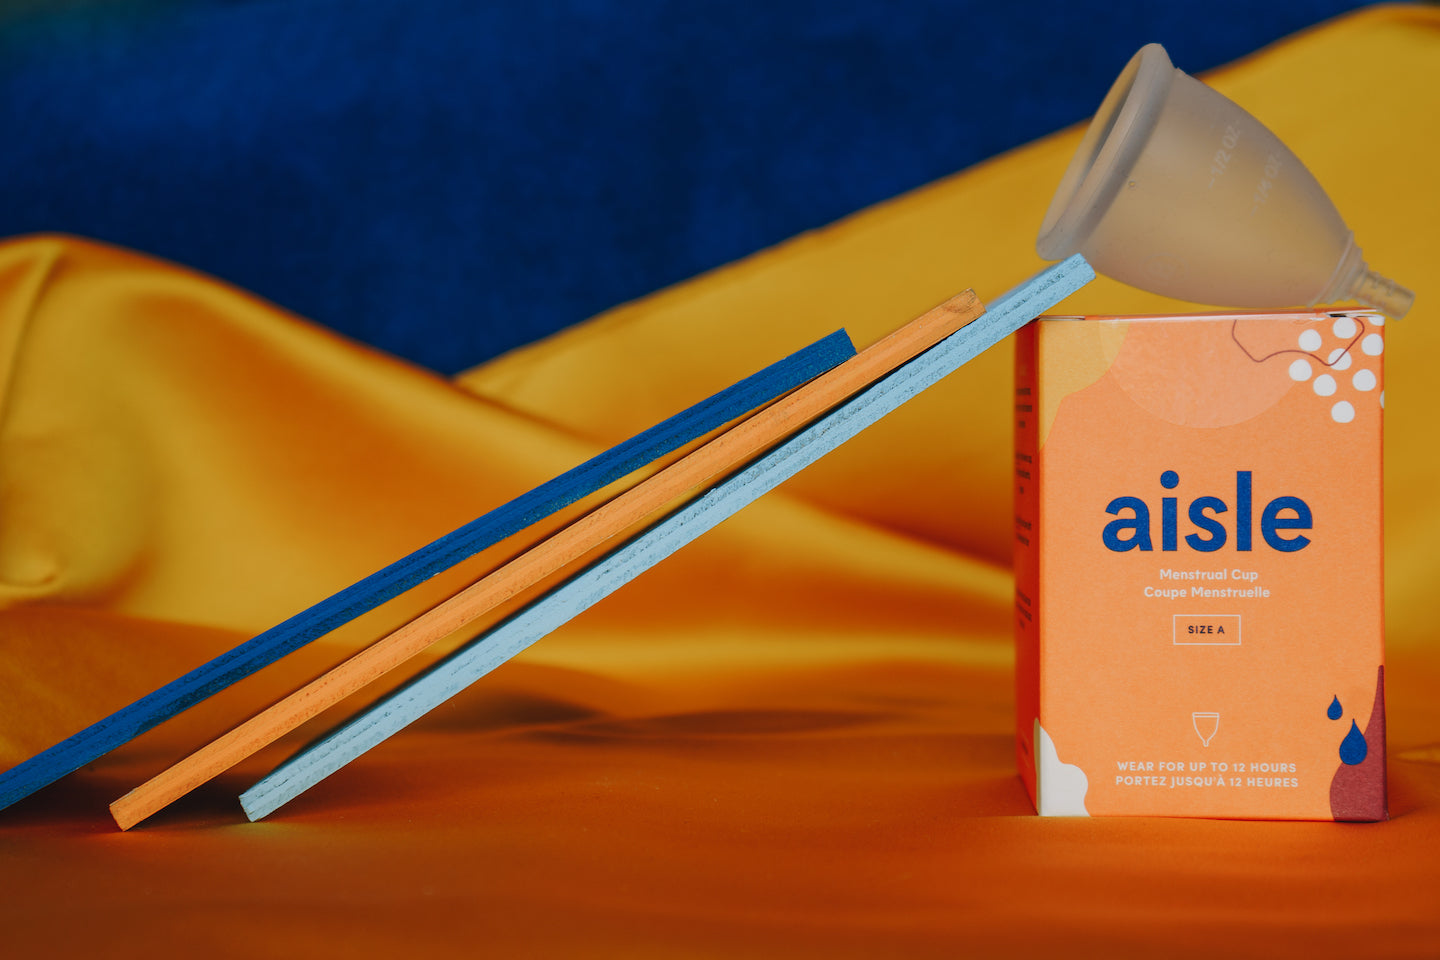 An Aisle menstrual cup sits on top of its box. There are 3 thin rectangular pieces of wood leaning up against the cup box.